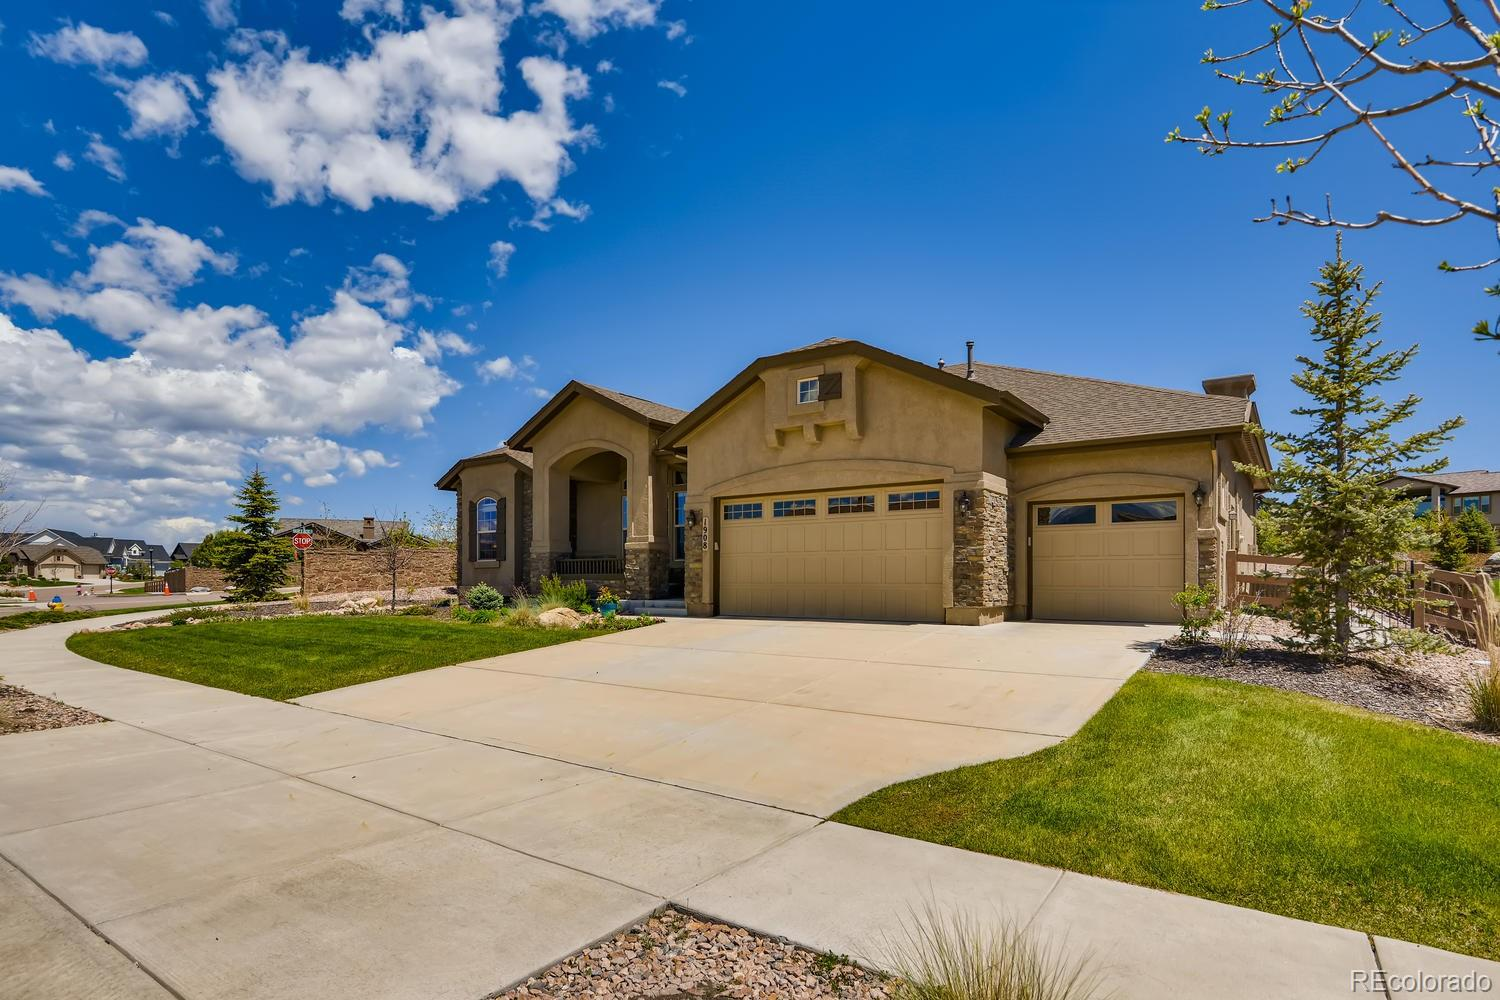 MLS# 5599006 - 3 - 1908 Turnbull Drive, Colorado Springs, CO 80921